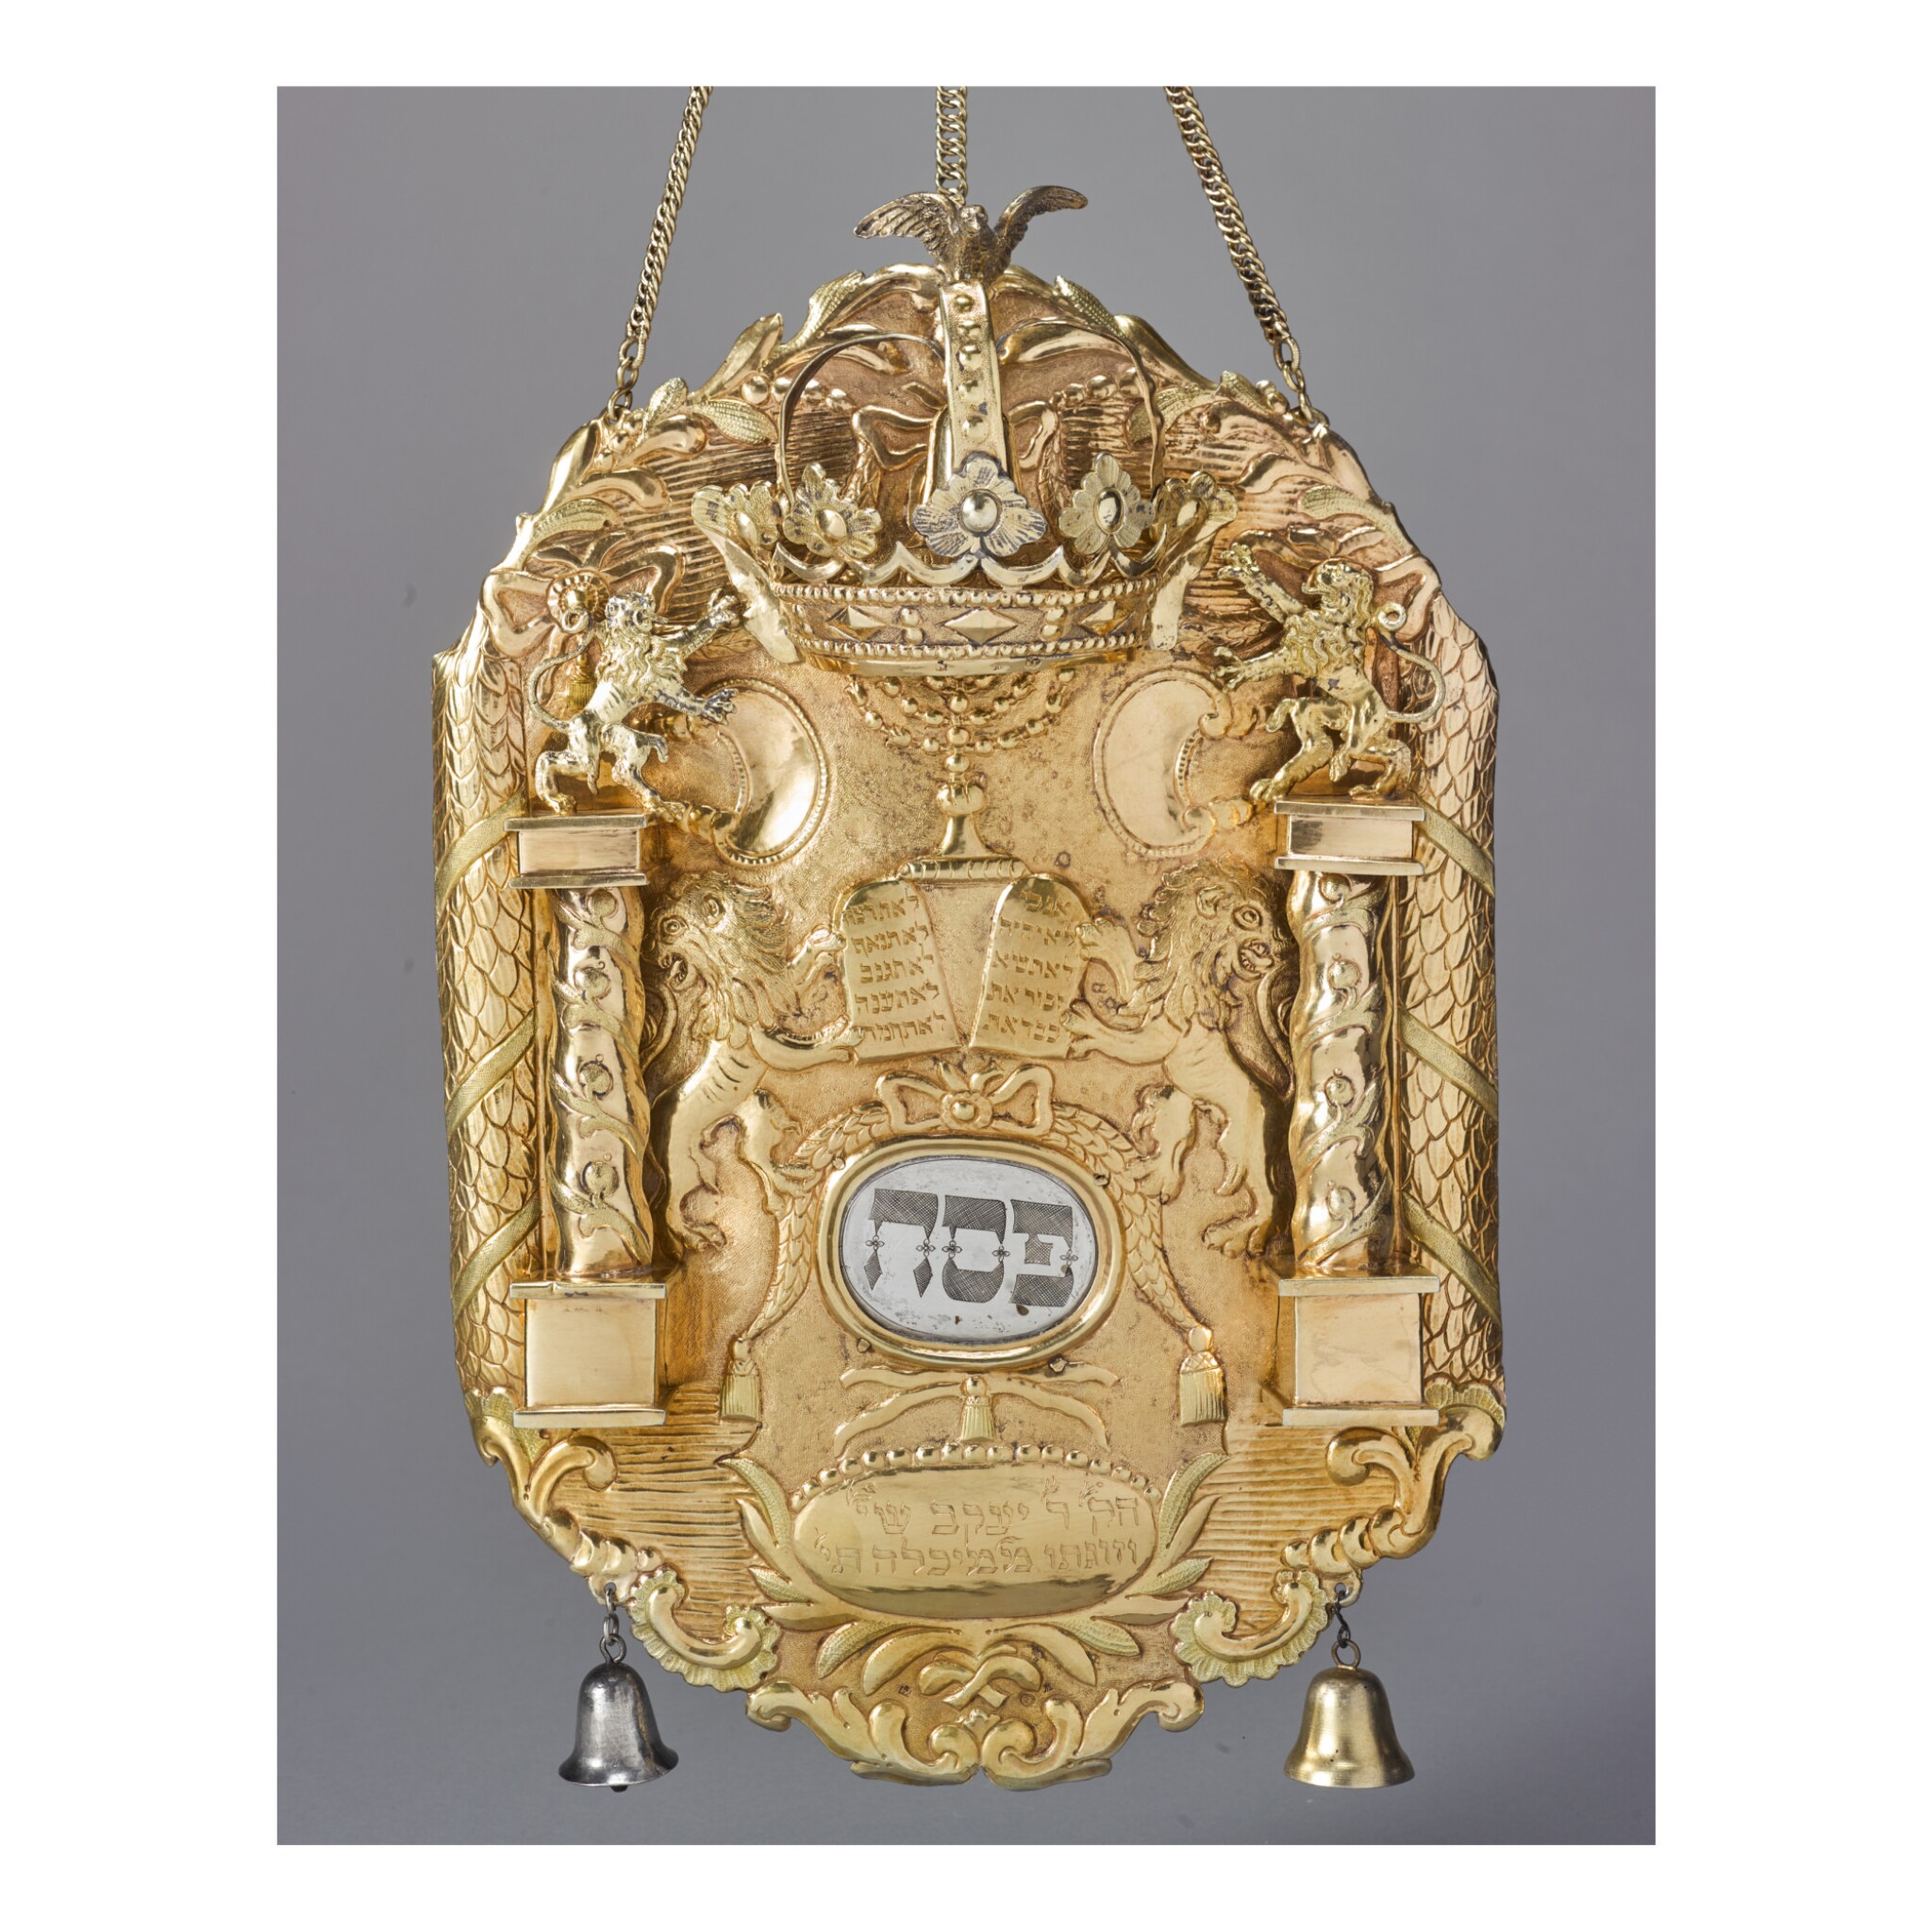 View full screen - View 1 of Lot 53. A GERMAN SILVER-GILT TORAH SHIELD, MARKED IR, PROBABLY FOR JOHANN JACOB RUNECKE, FÜRTH, DATE LETTER M, LATE 18TH CENTURY.